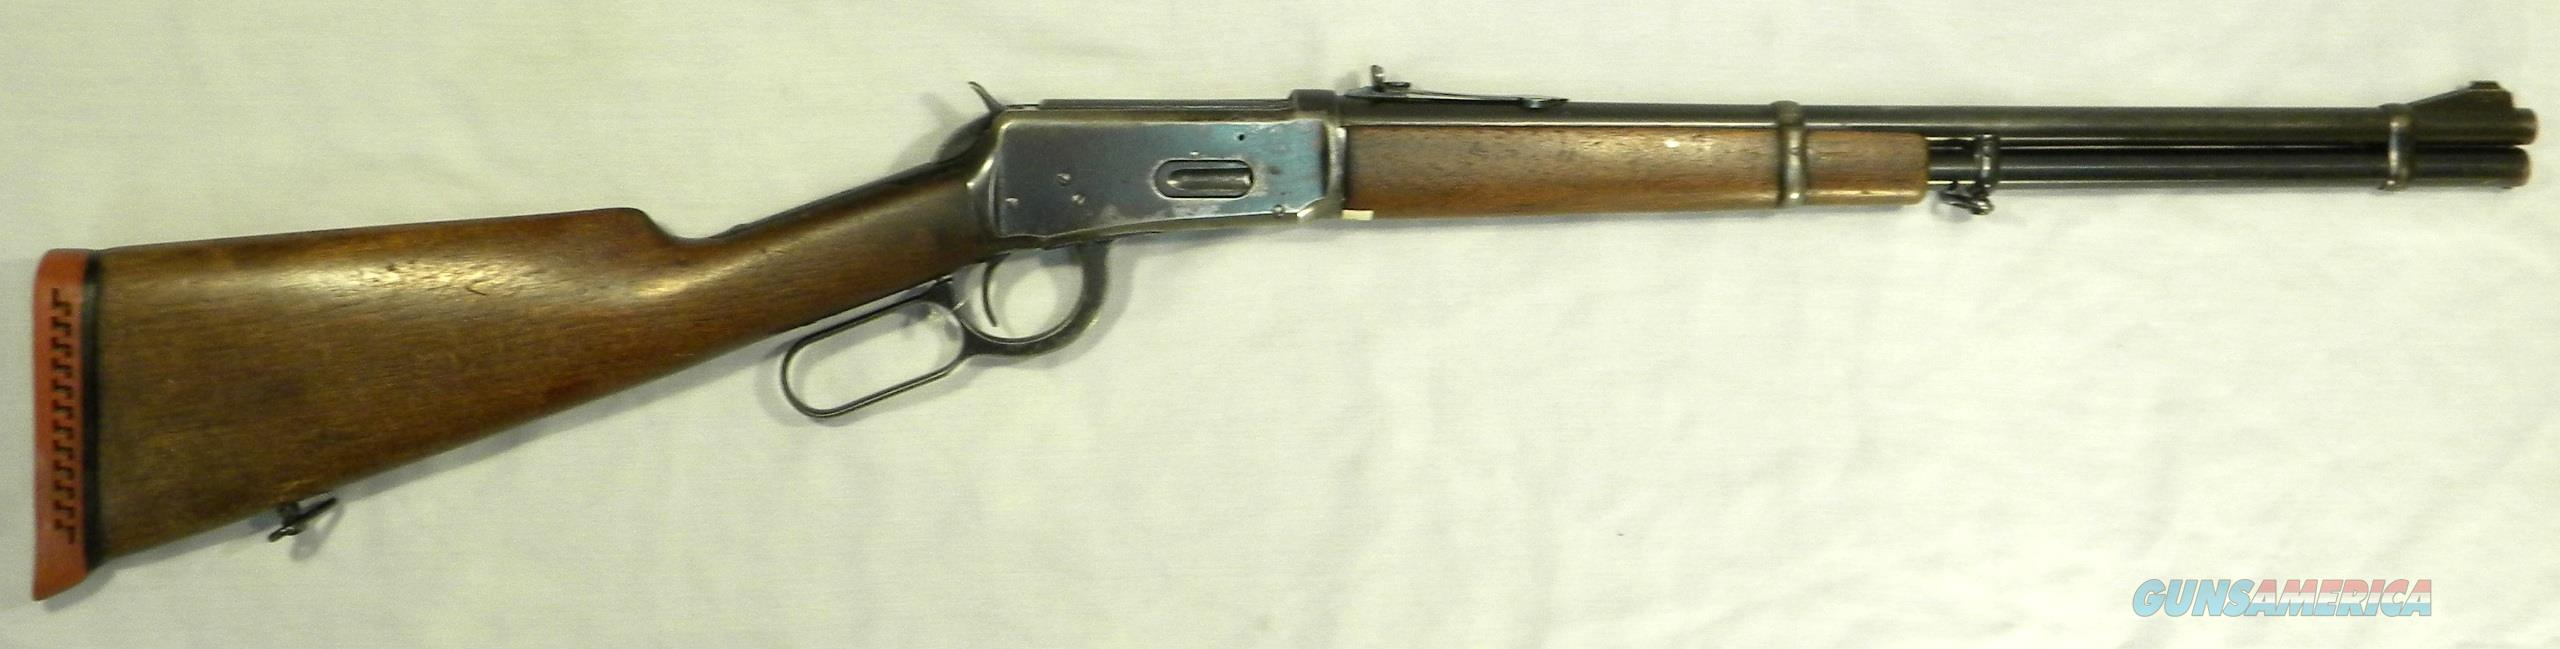 Winchester Model 94 .30WCF/.30-30, Pre-'64, Made During WWII  Guns > Rifles > Winchester Rifles - Modern Lever > Model 94 > Pre-64